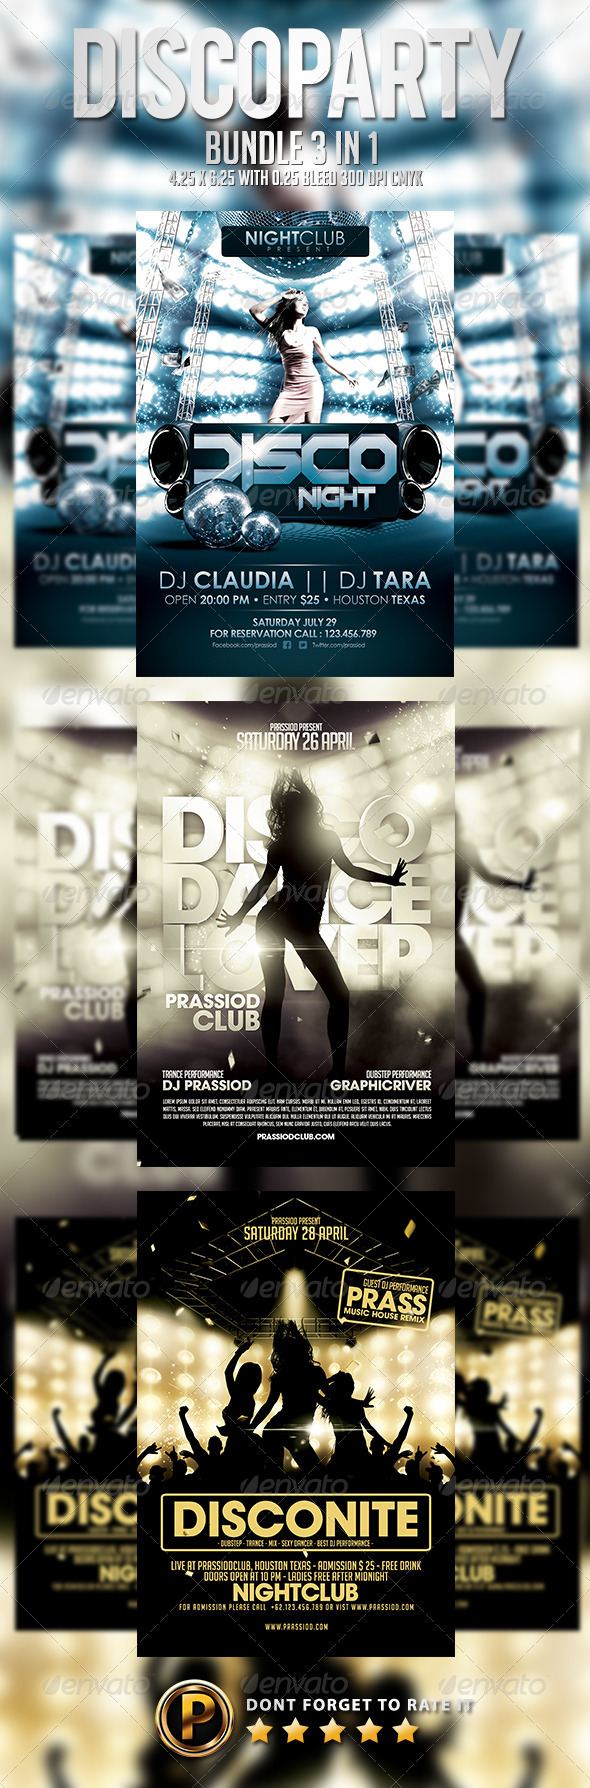 Disco Party Flyer Template - Bundle 3 In 1 - Clubs & Parties Events